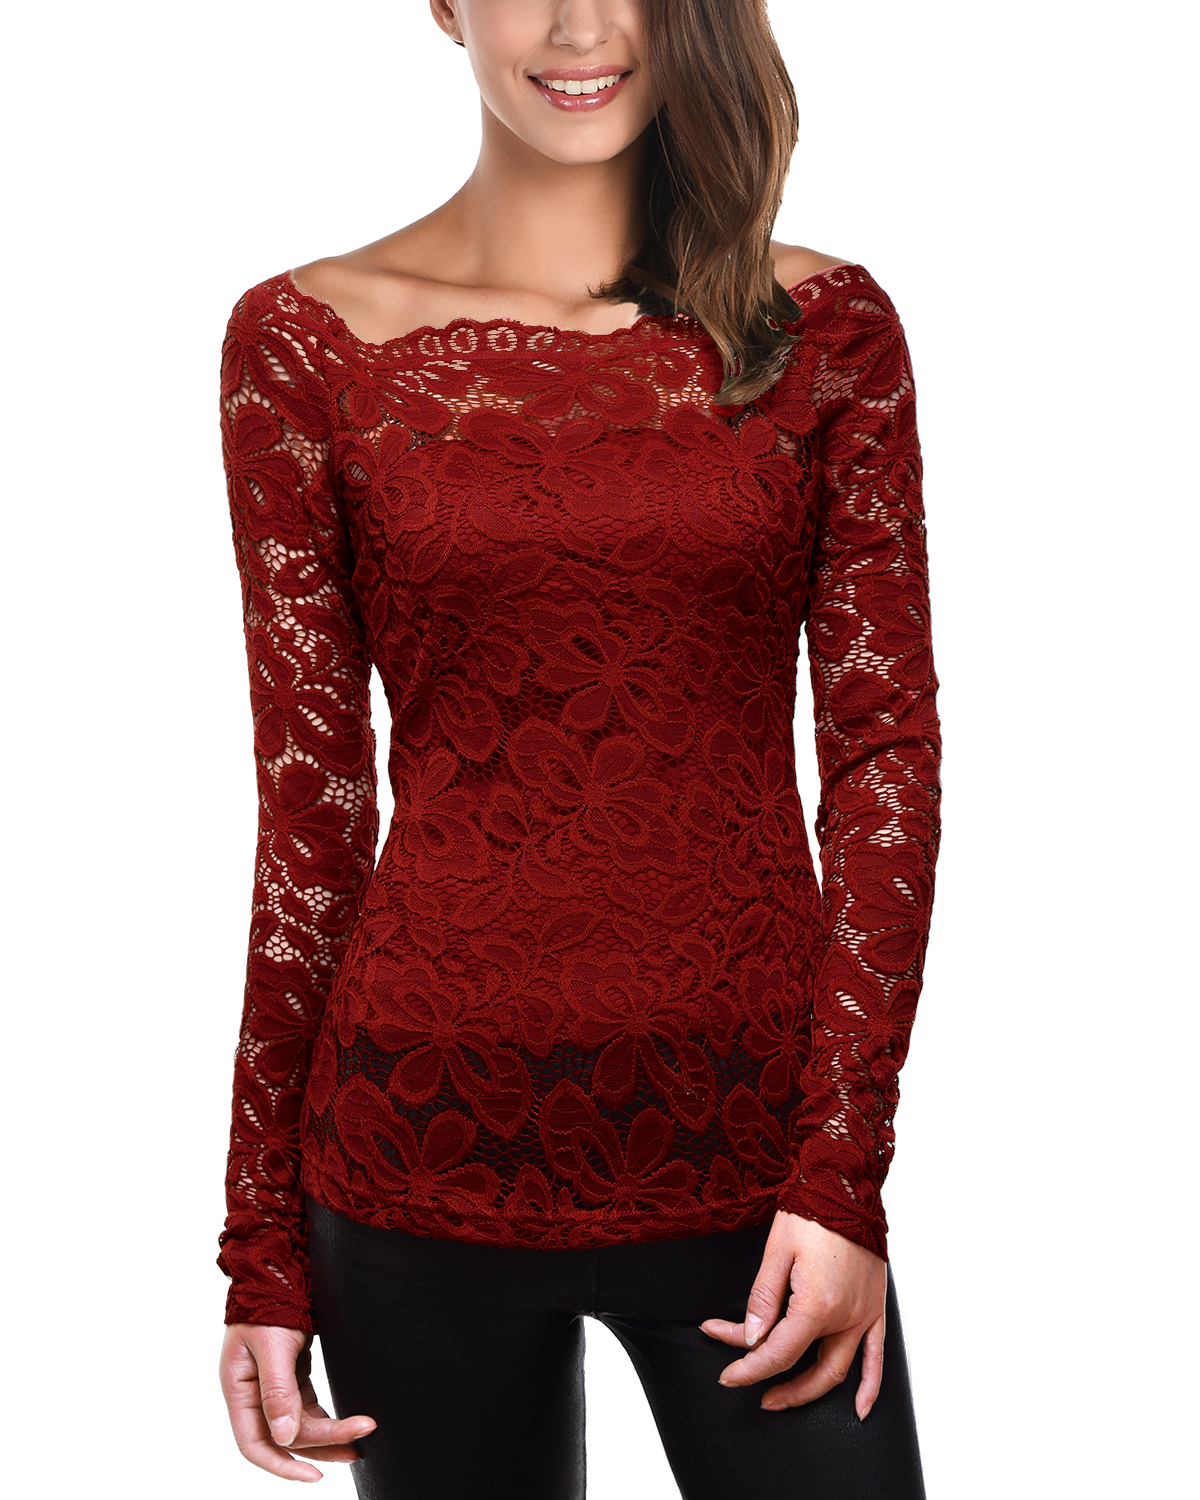 Find a great selection of 3/4 and long sleeve tops for women at Boscov's. Fill your wardrobe with tops for any weather and occasion at great prices. Grab ahold of classic chic style in this Absolutely Famous solid top with long lace grommet-accented balloon sleeves. The stellar design includes a tie trim split neckline and rounded hem. 95%.